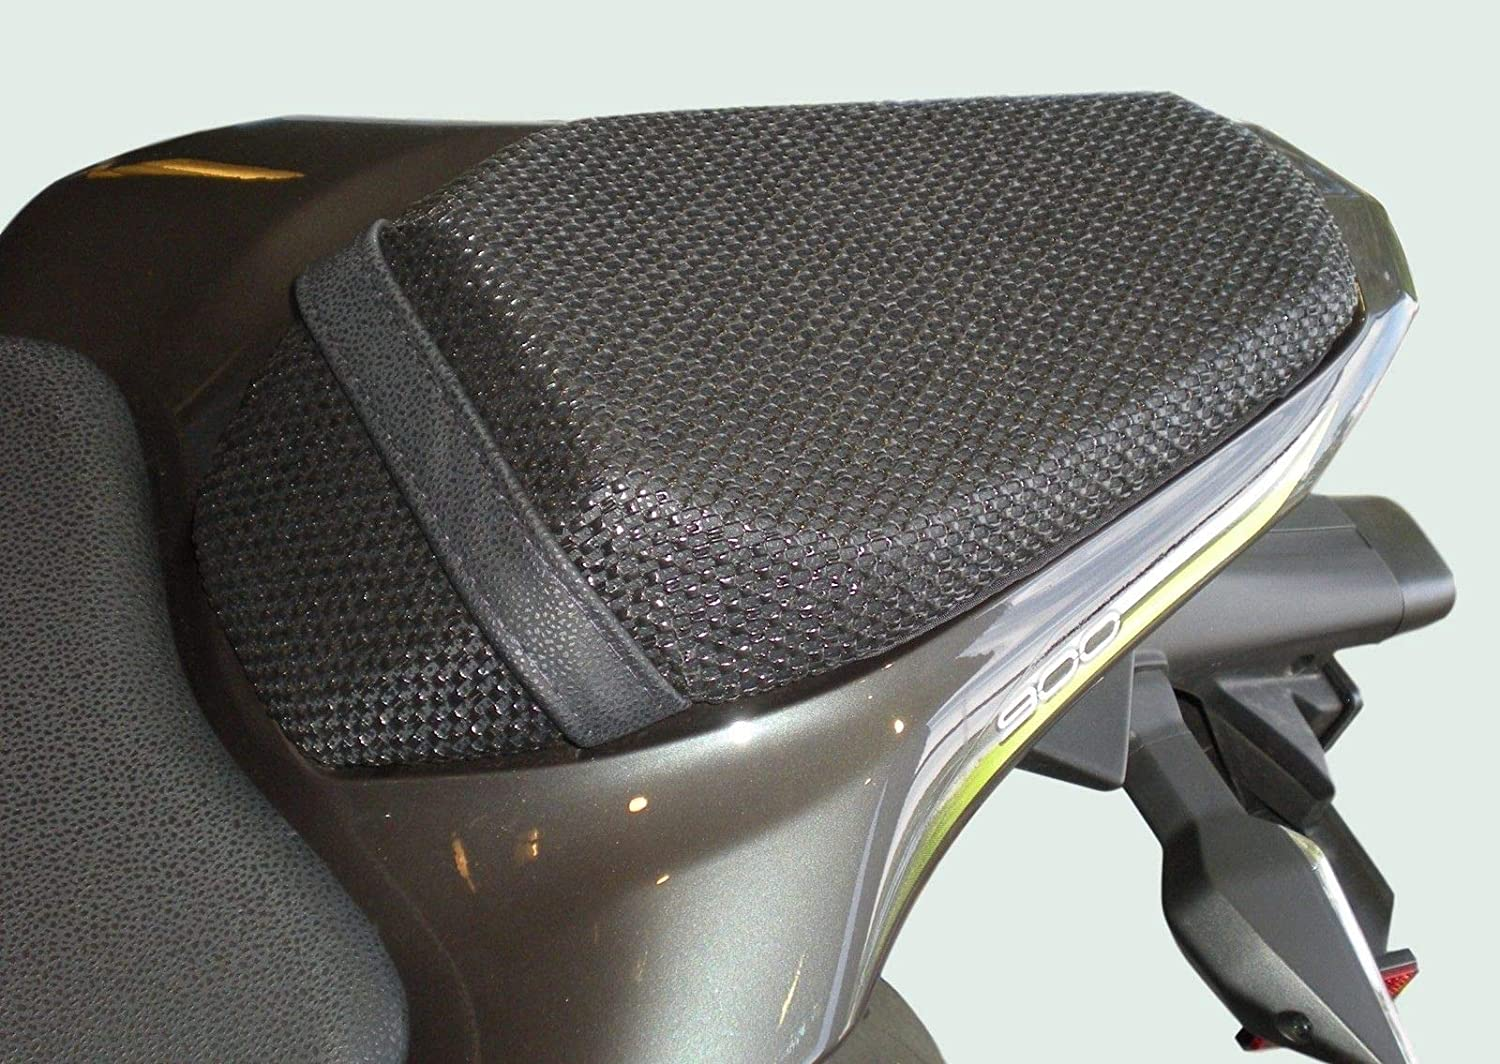 KAWASAKI Z900 (2017-2018) TRIBOSEAT COPRISELLA PASSEGGERO ANTISCIVOLO NERO ADVANCED SEATING TECHNOLOGY LIMITED